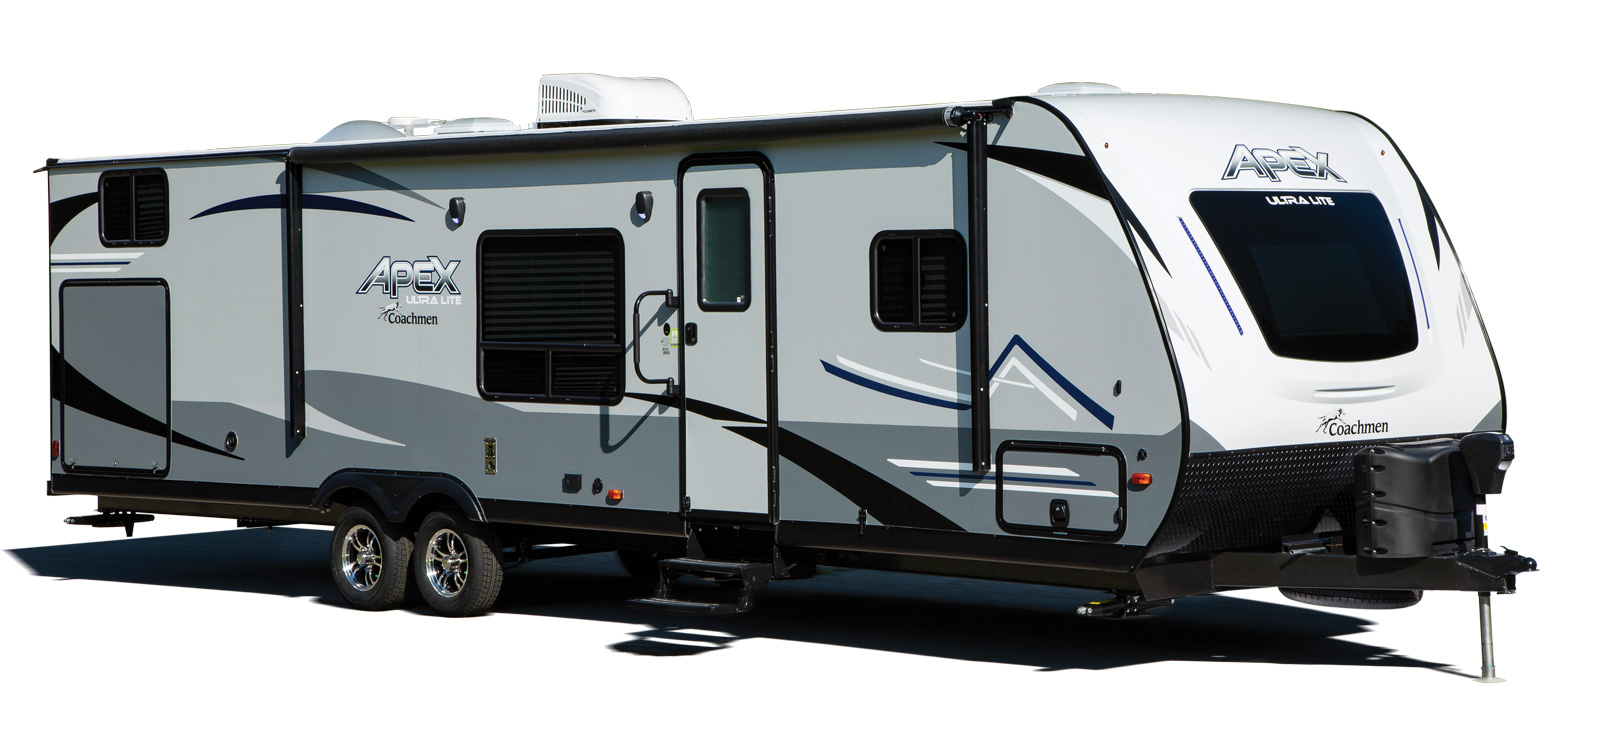 RV Types Explained: From Class A Motorhomes to Pop-Up Campers